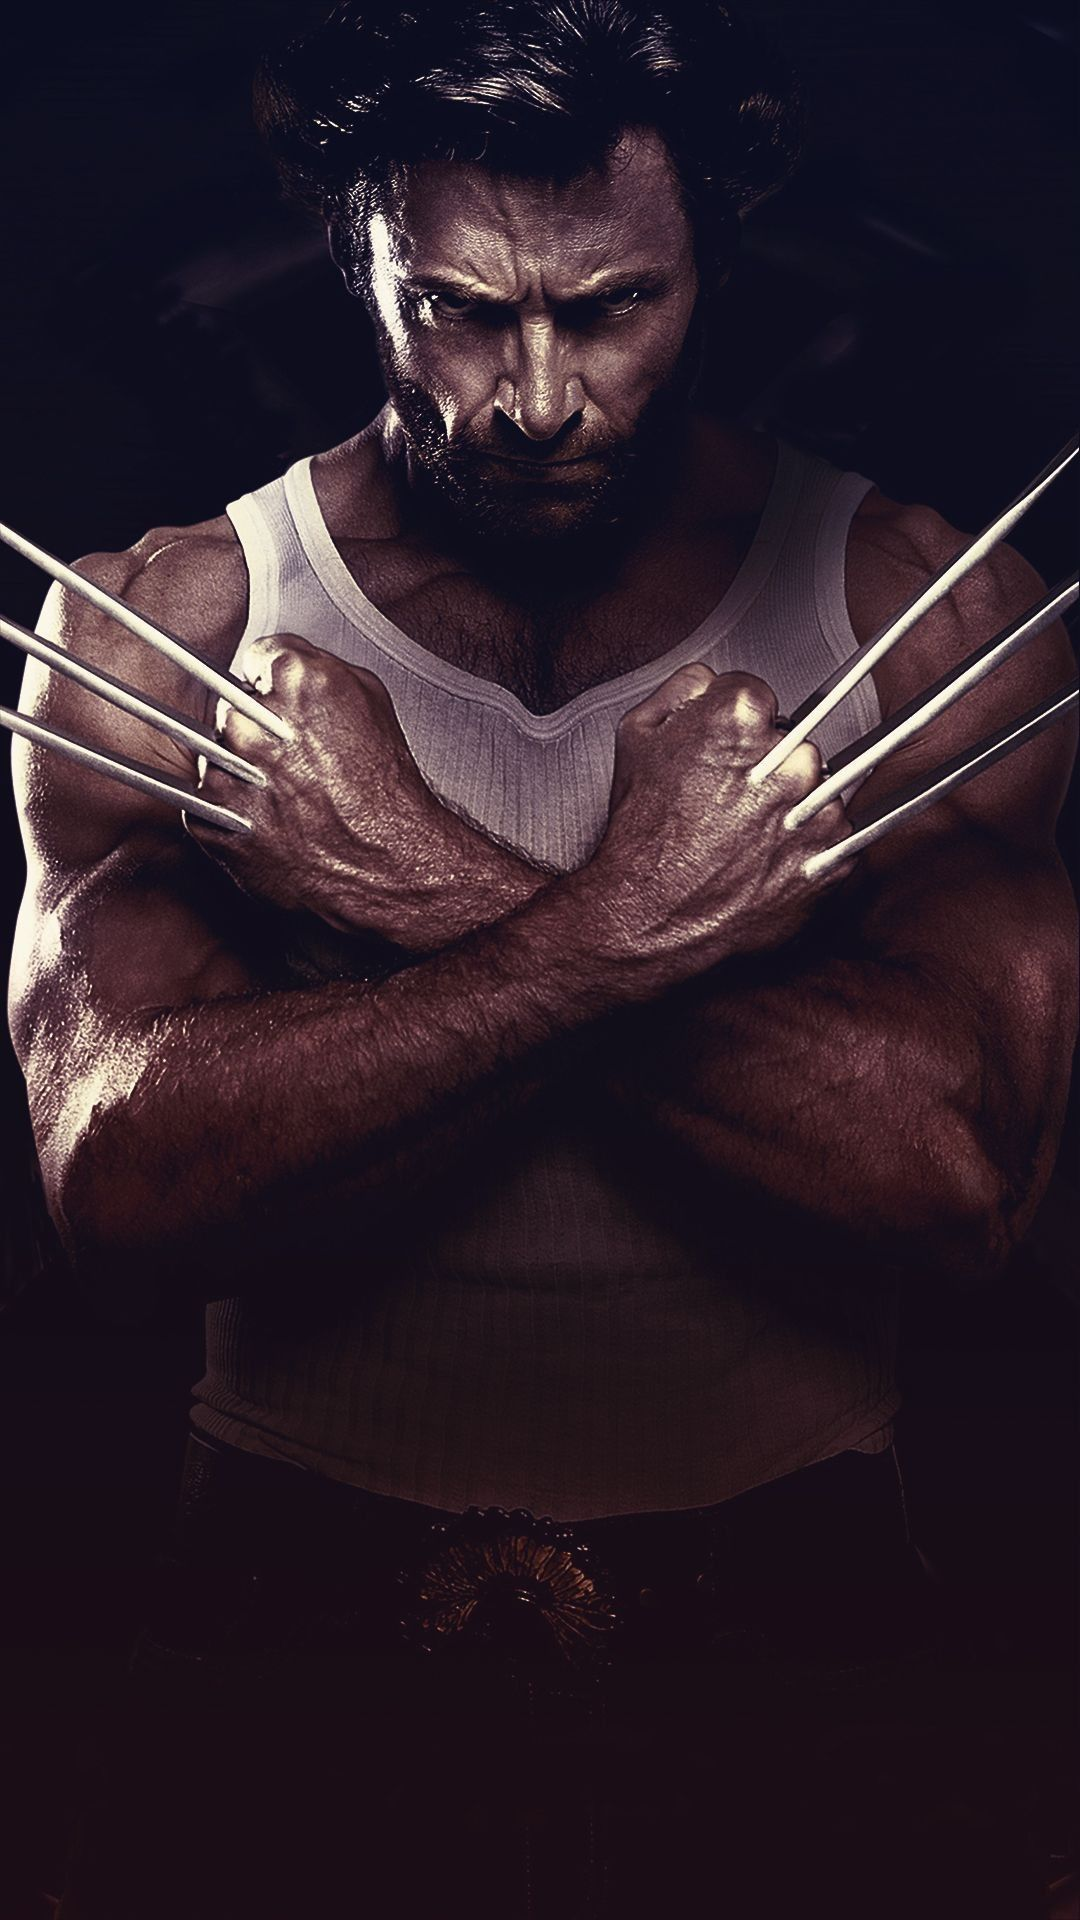 Wolverine Phone wallpaper for men, Android wallpaper